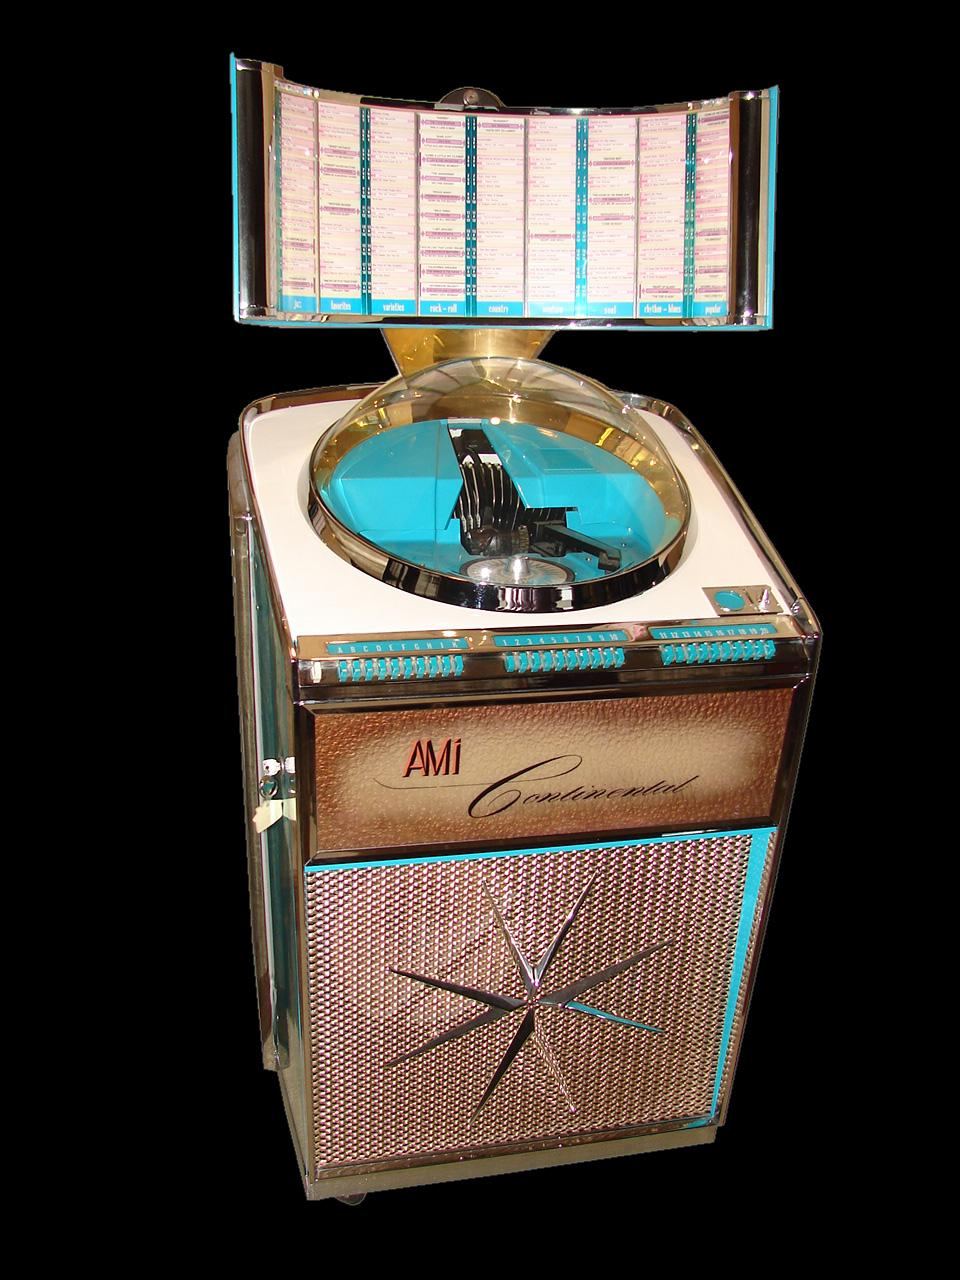 Stellar 1950s Ami Continental Jukebox Model Xjdb200 One Of